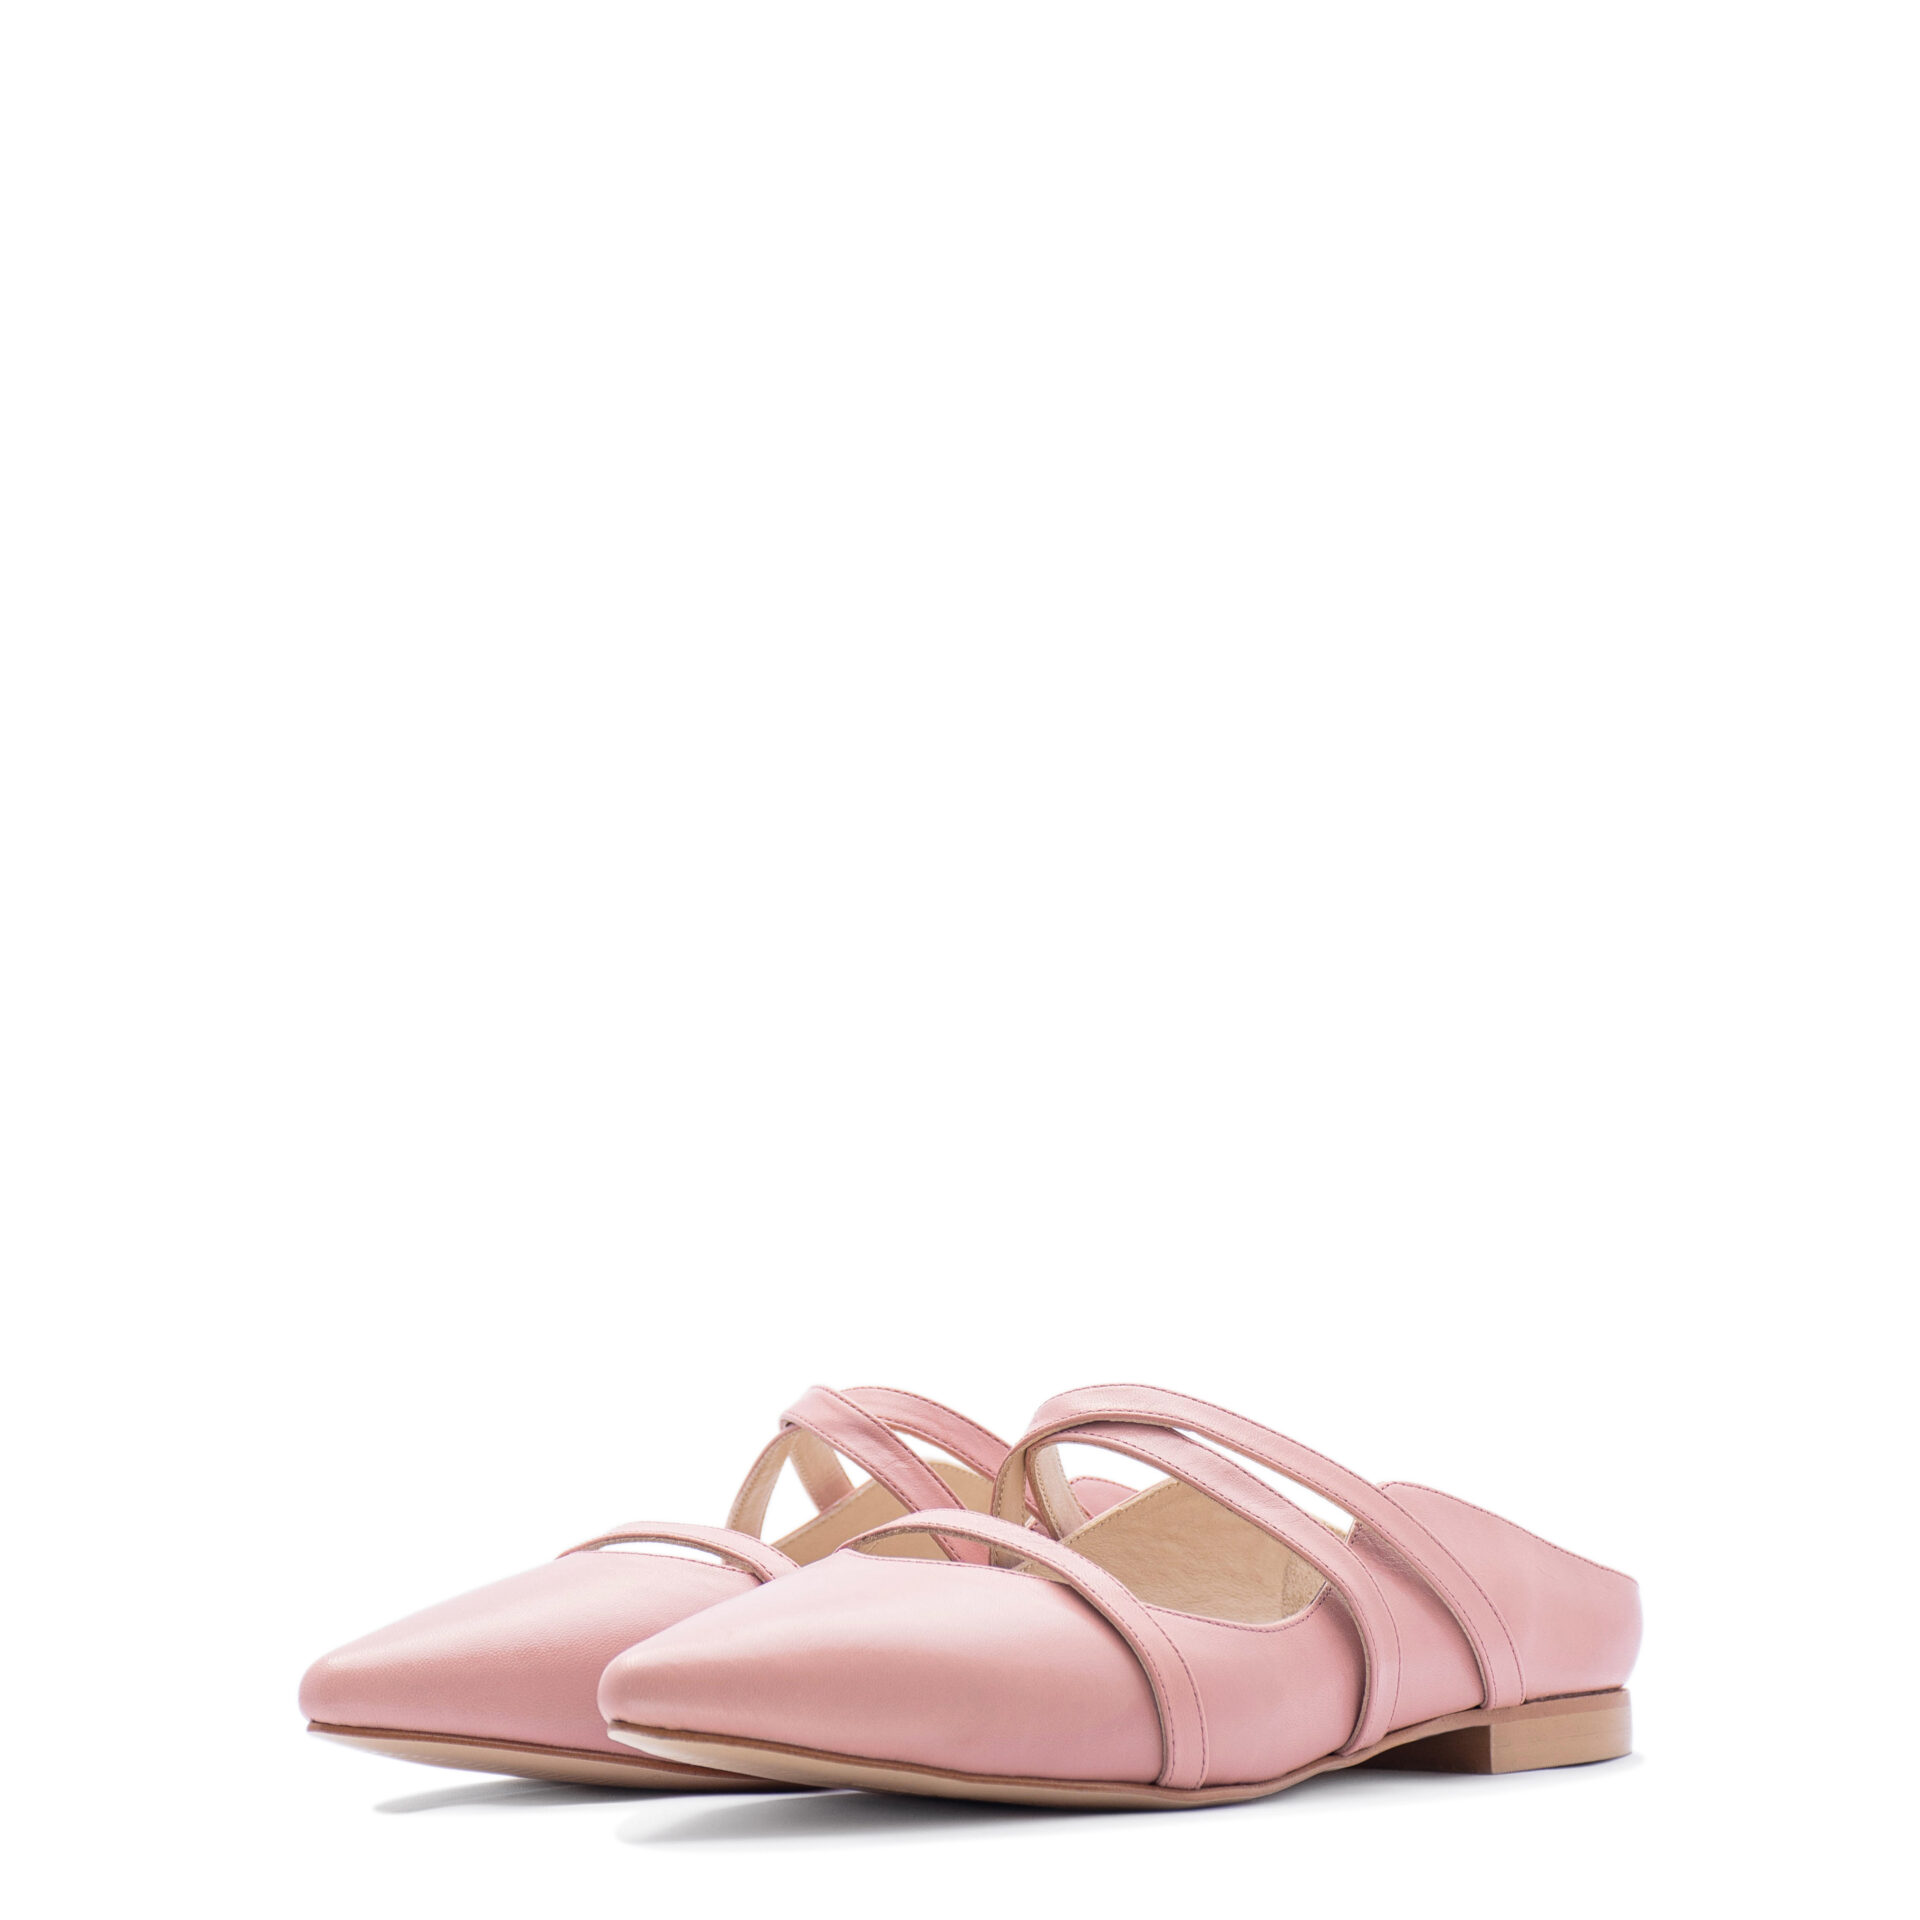 Pink pointed-toe strappy bridal flats flats